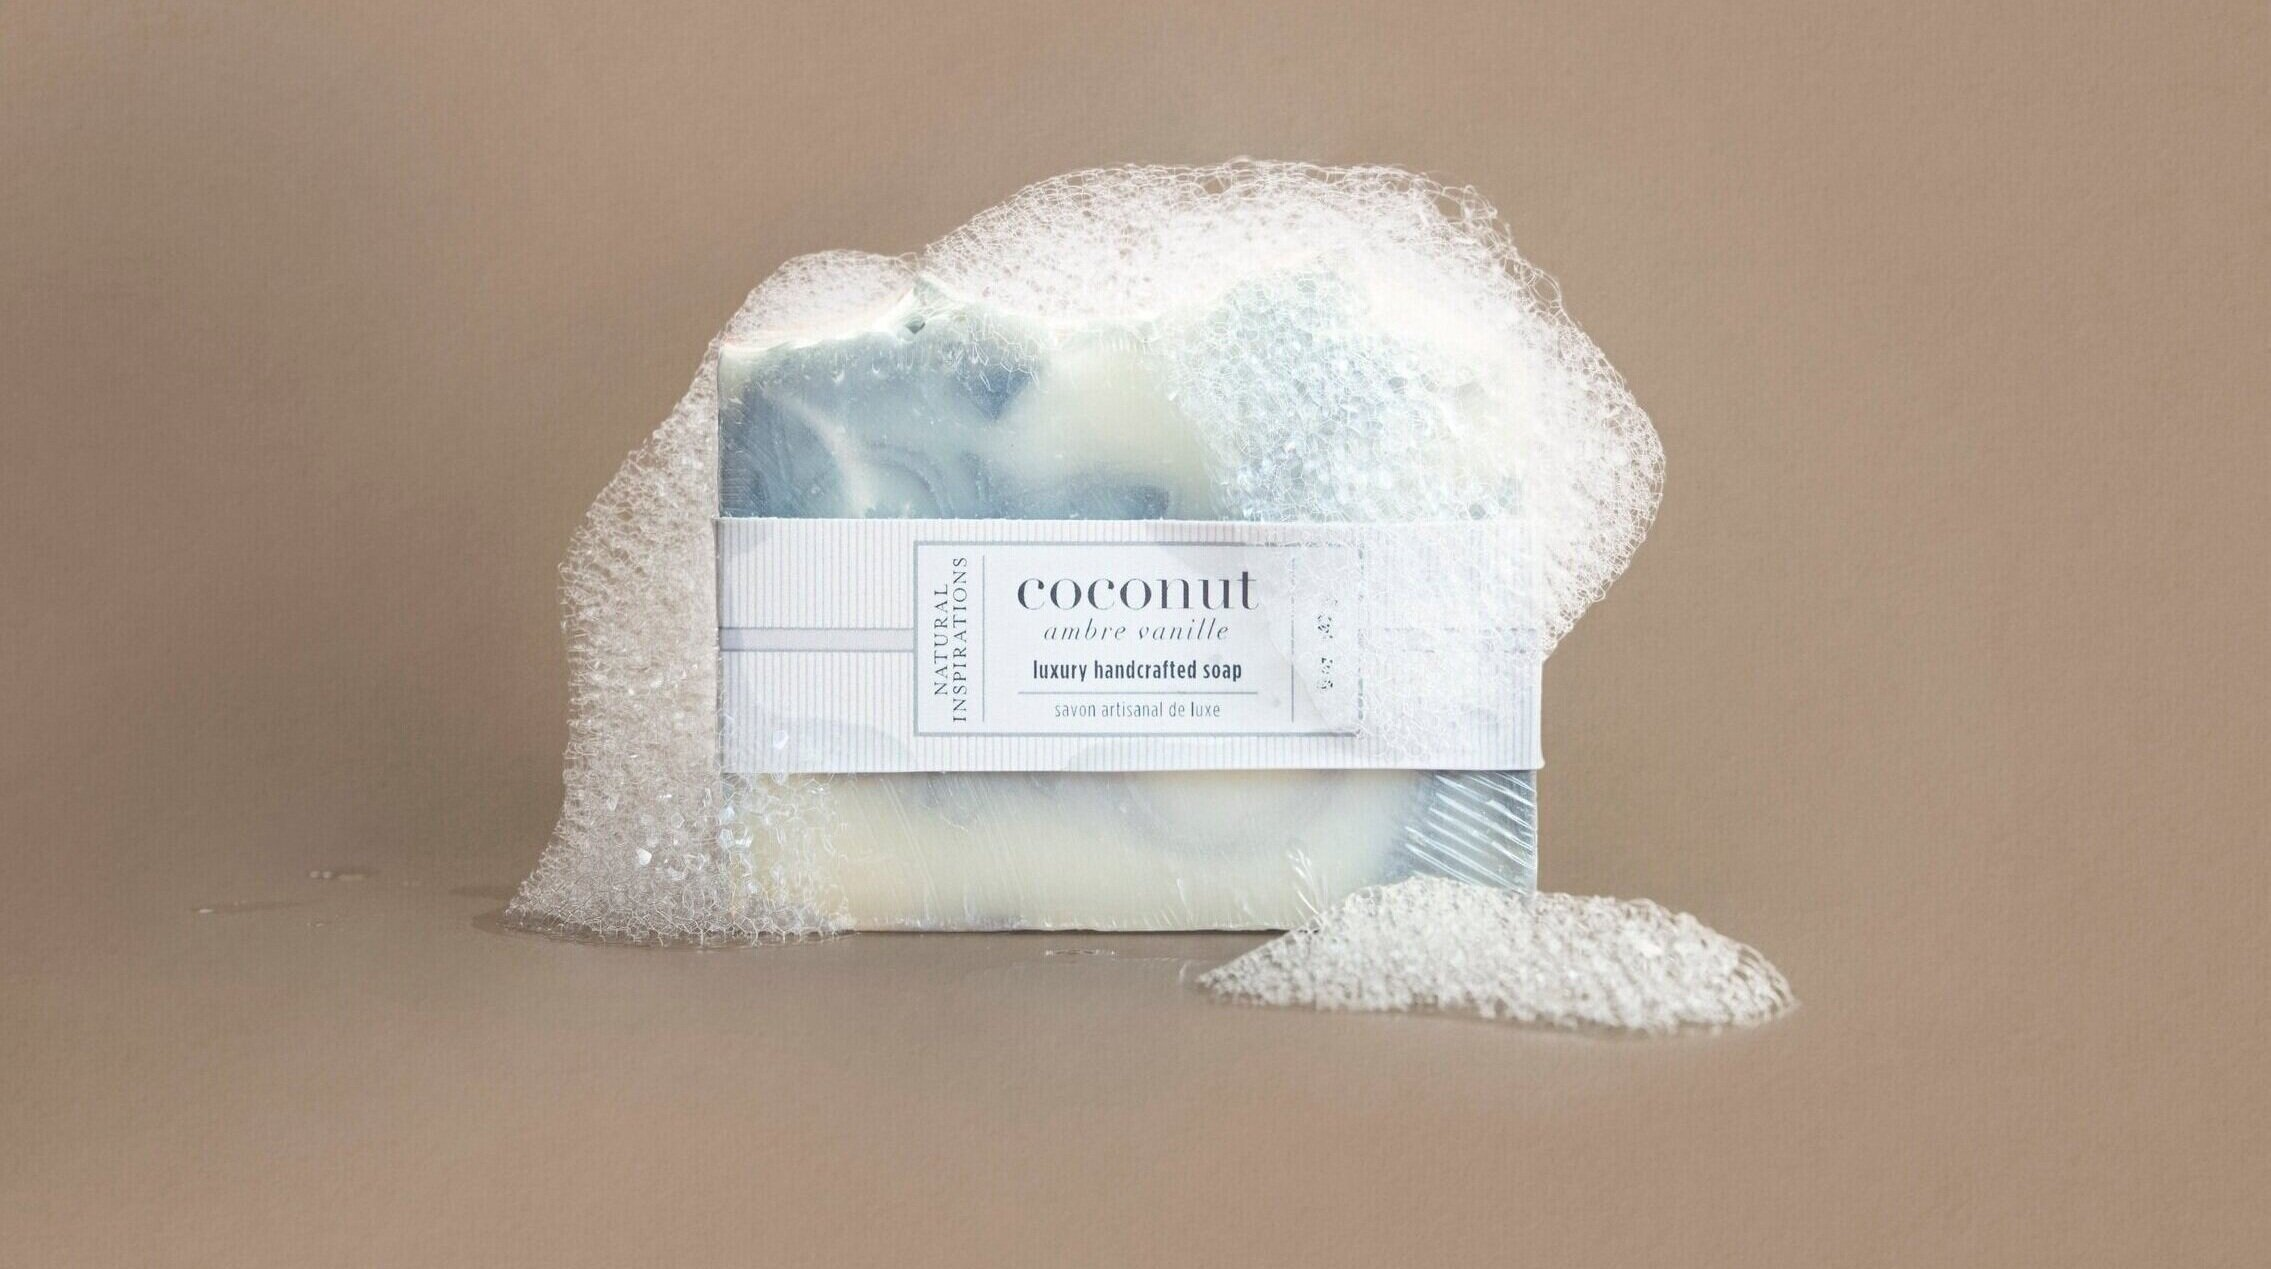 New for Fall 2019: Luxury Handcrafted Soap - Our handcrafted soap preserves the rich benefits of plant-derived butters and oils to create the most nourishing natural soap. Creamy, luxurious lather and clean fresh fragrances indulge you with the ultimate moisturizing experience.